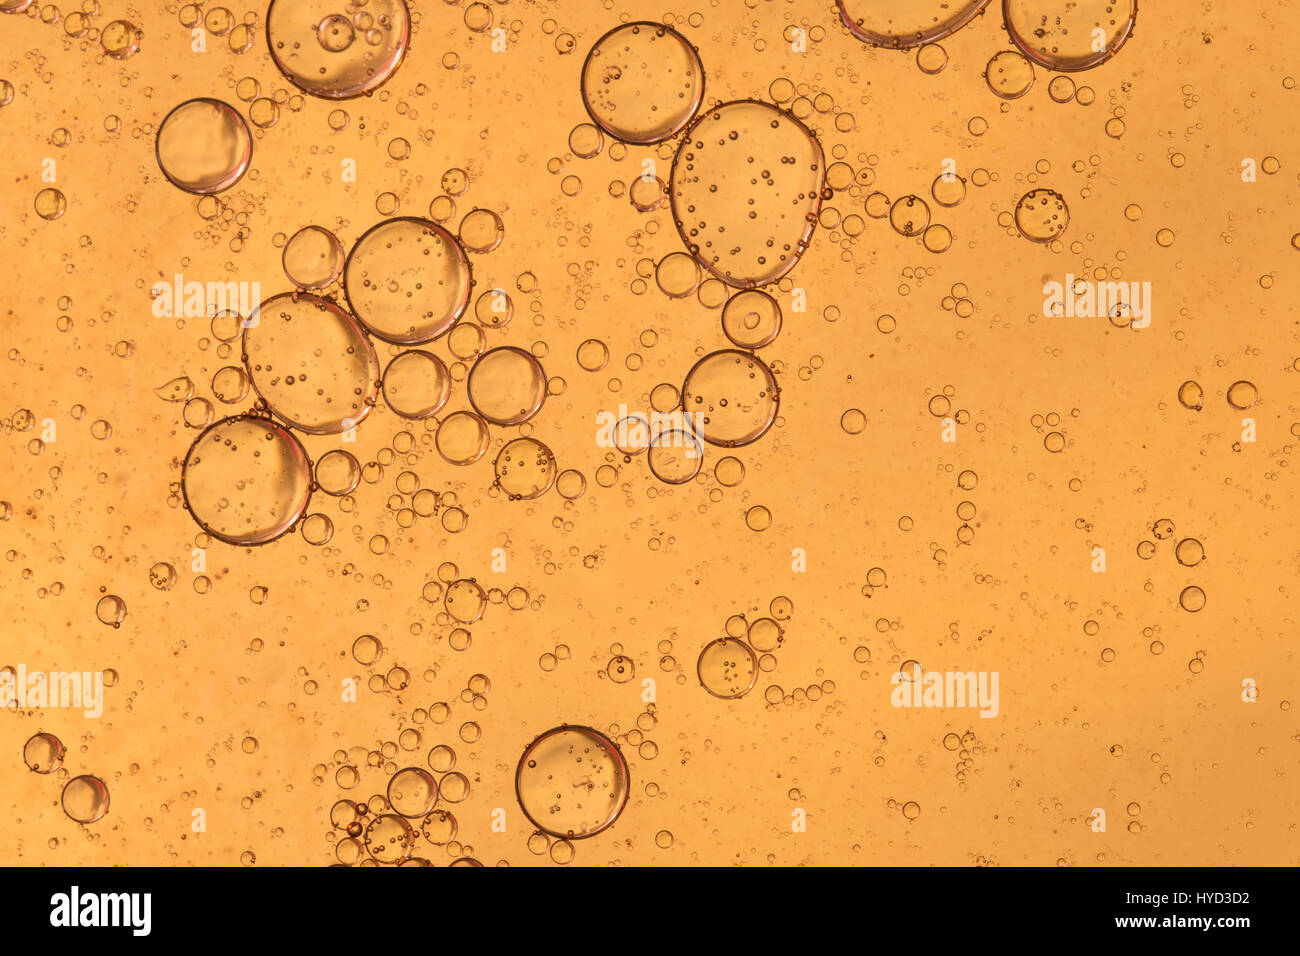 Bubbles. Neutral colours for science type background. - Stock Image